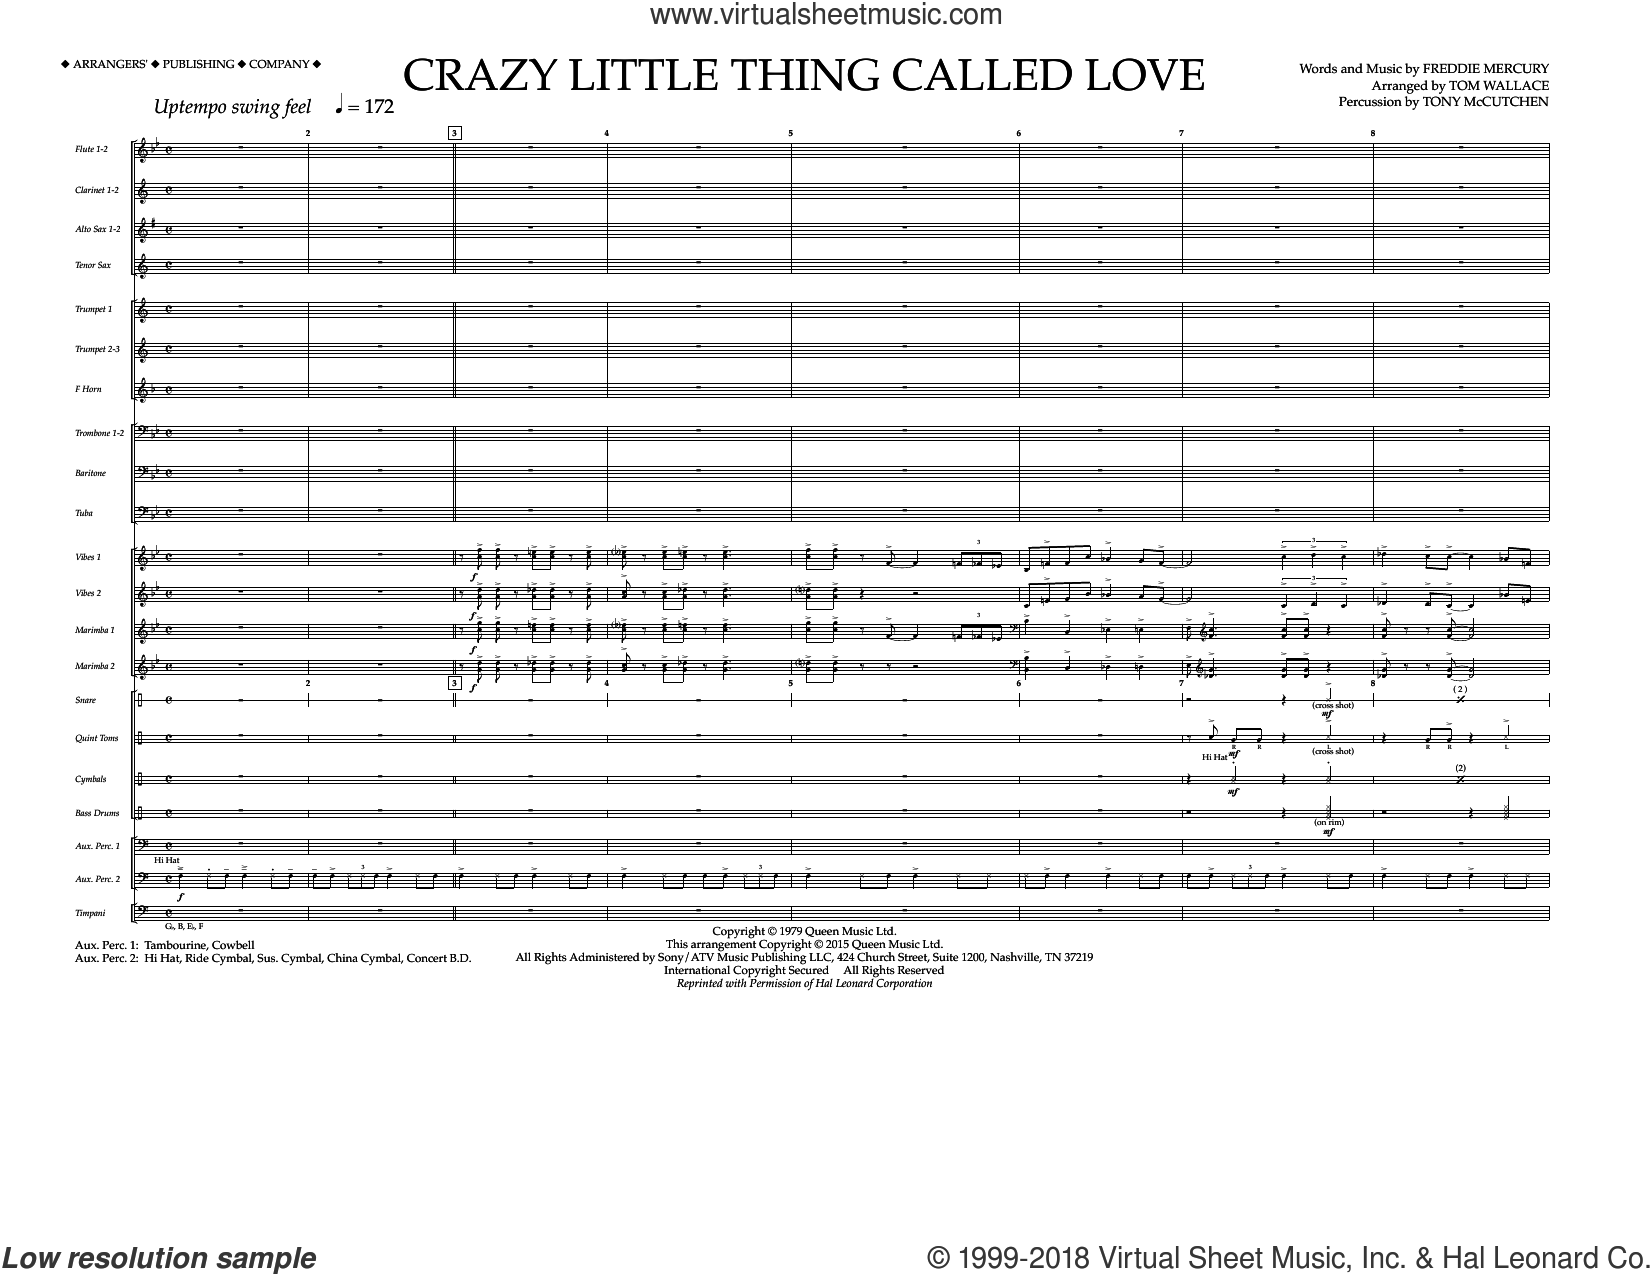 Crazy Little Thing Called Love (COMPLETE) sheet music for marching band by Queen, Dwight Yoakam, Freddie Mercury and Tom Wallace, intermediate skill level